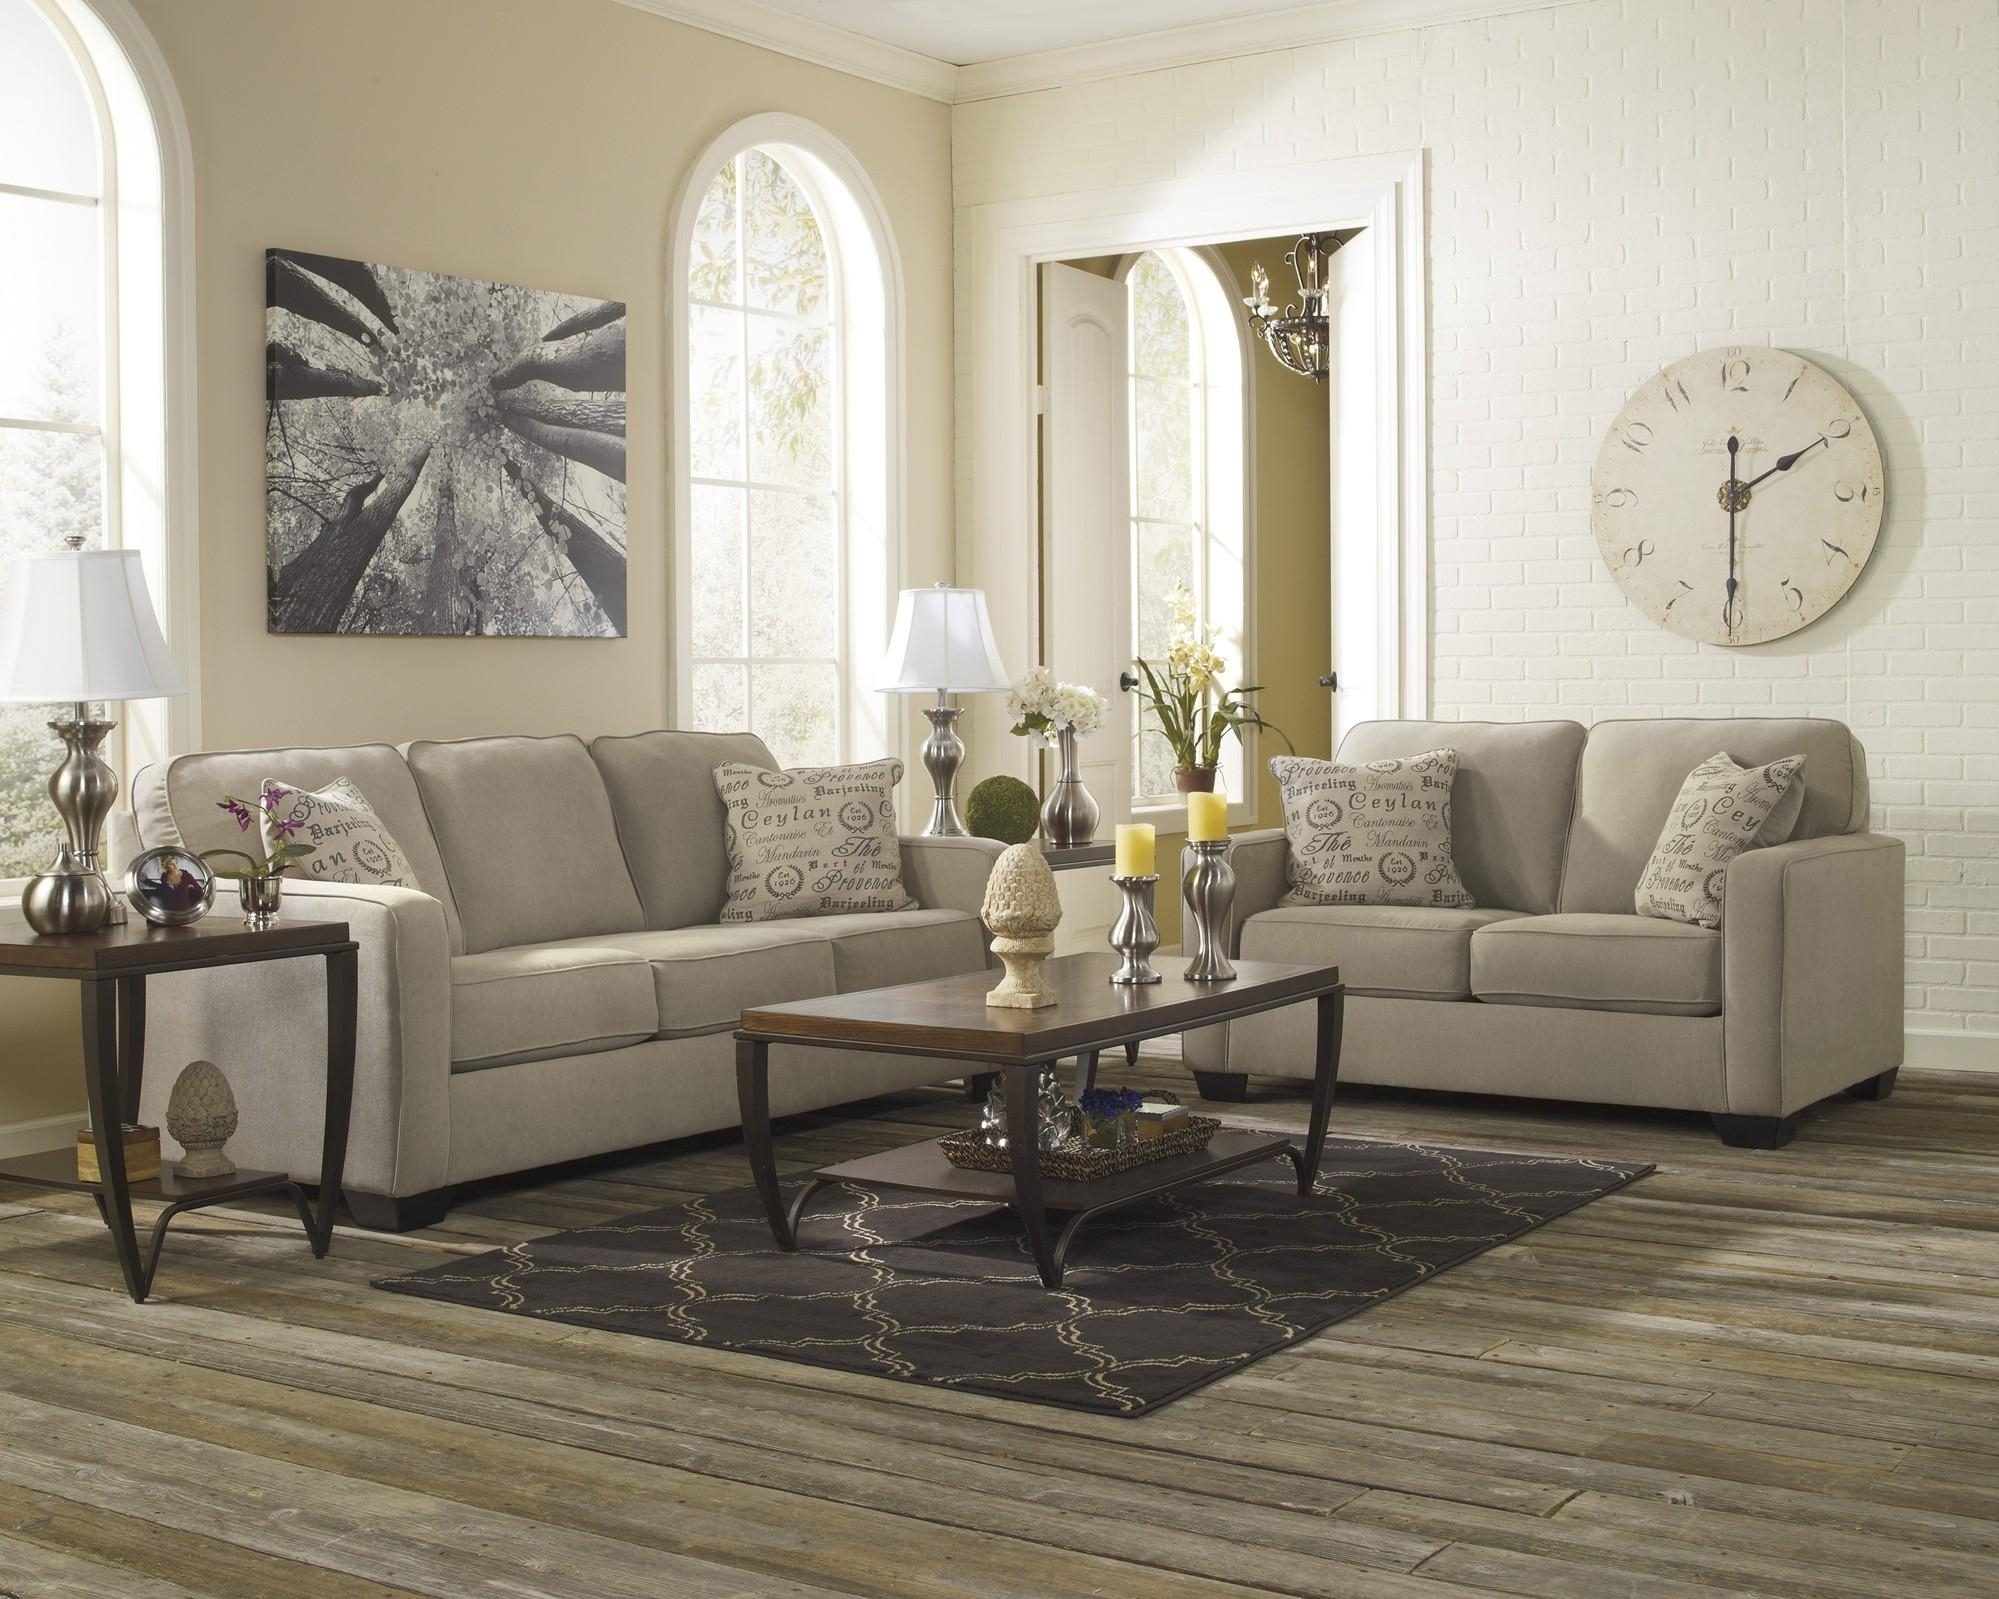 Alenya Quartz Sofa For $ (Image 1 of 20)